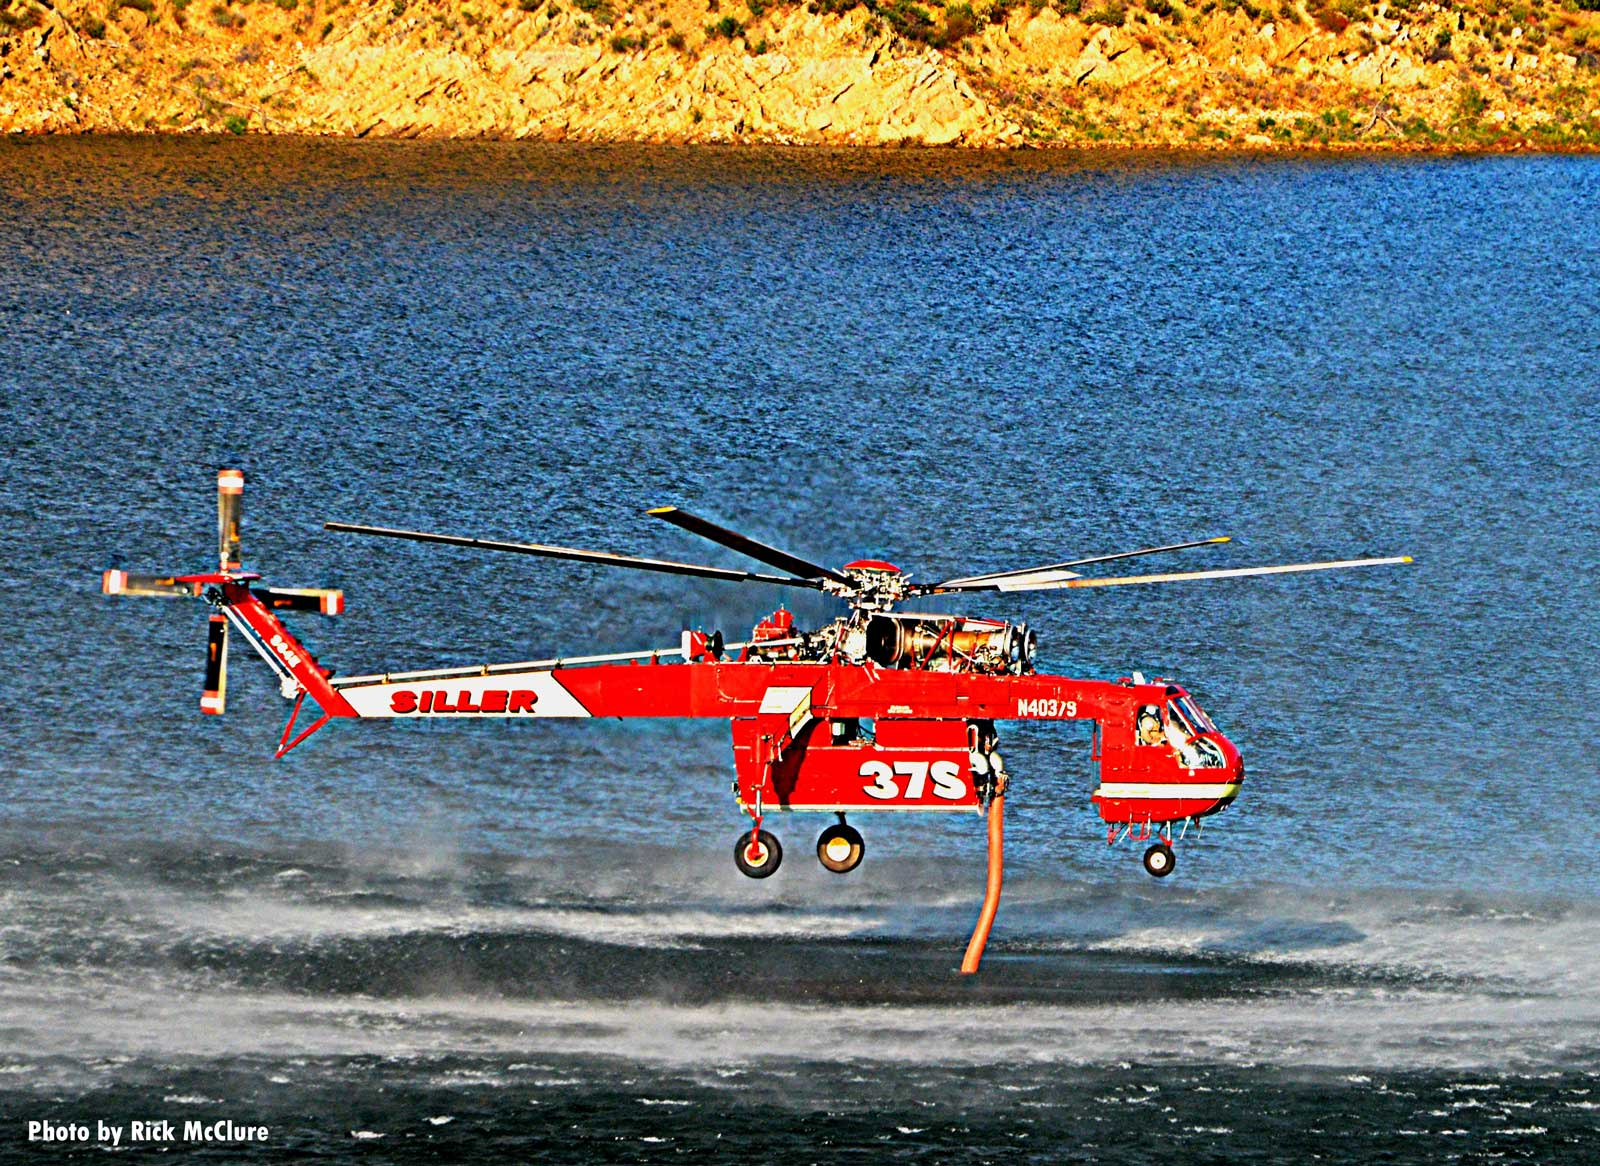 Helicopter gathering water for drop